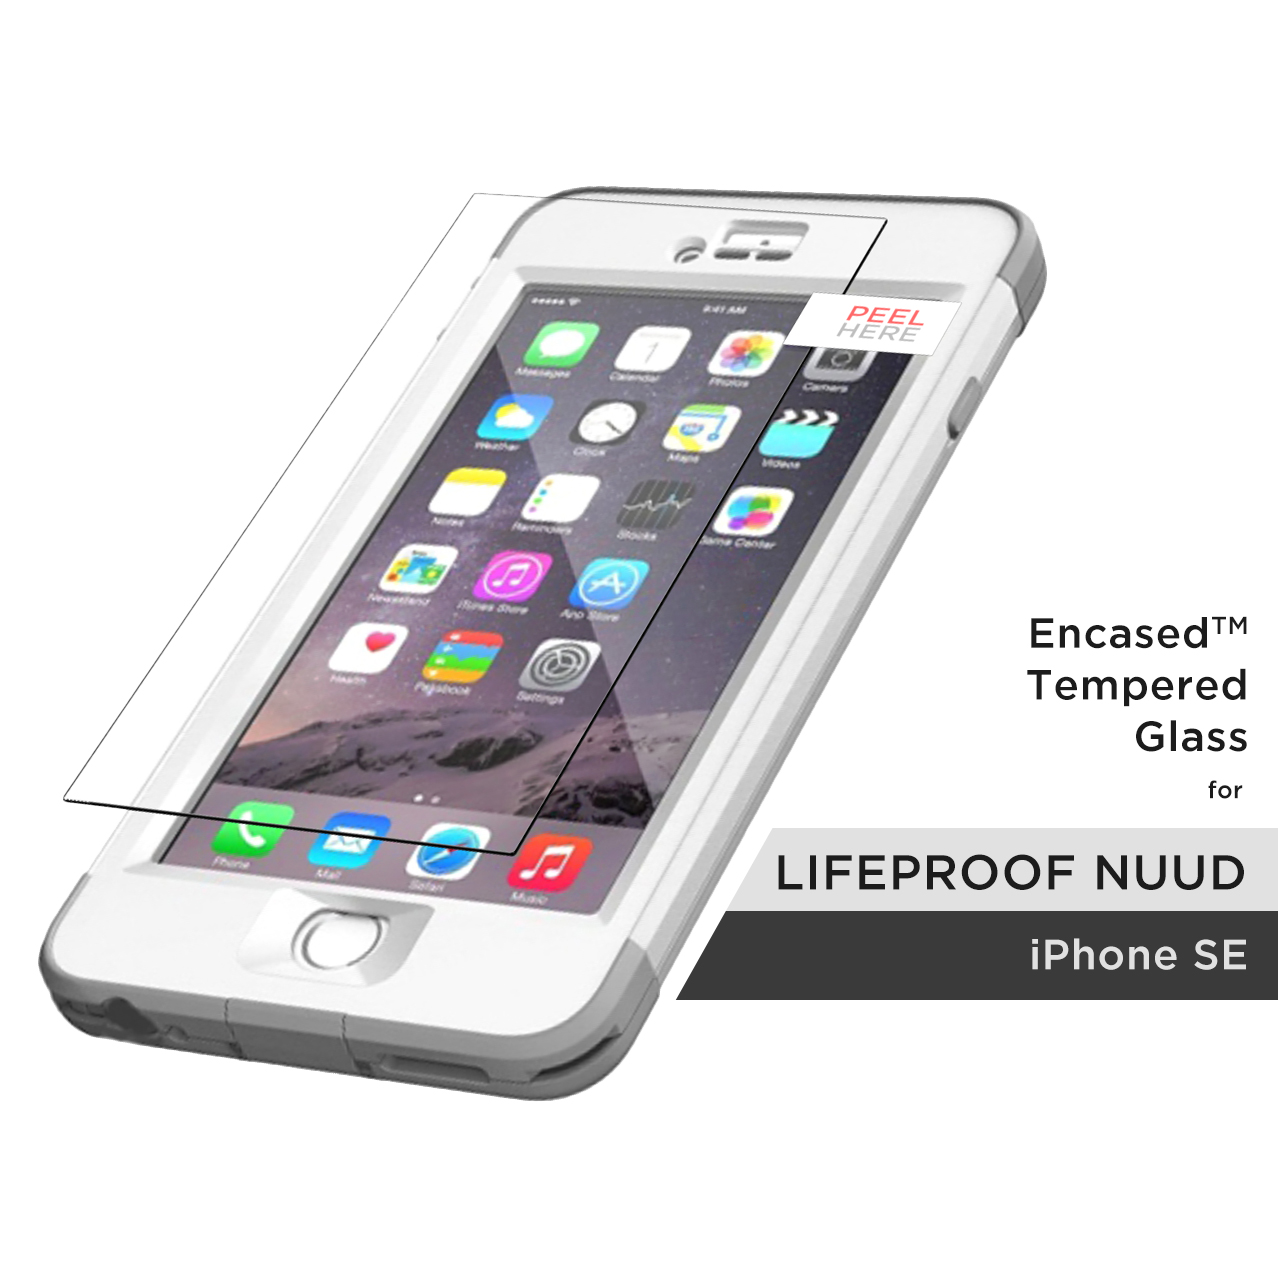 new arrival ffc75 f5573 Details about iPhone 5/SE Lifeproof Nuud Screen Protector, (R40)  ShatterProof Guard